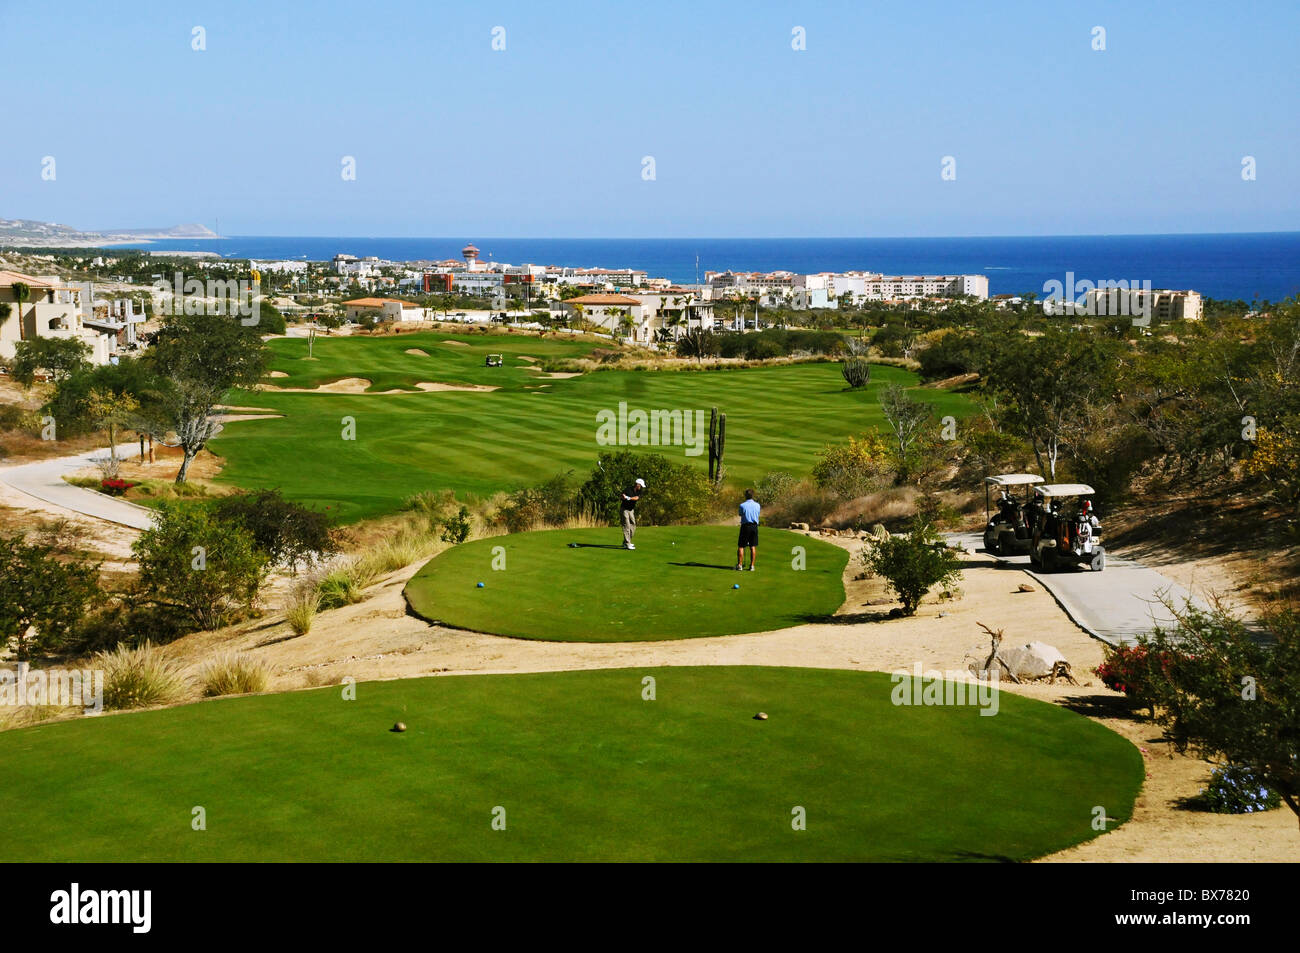 18th hole at Club Campestre Golf Course with town of San Jose del Cabo and Pacific Ocean below in Baja, Mexico Stock Photo